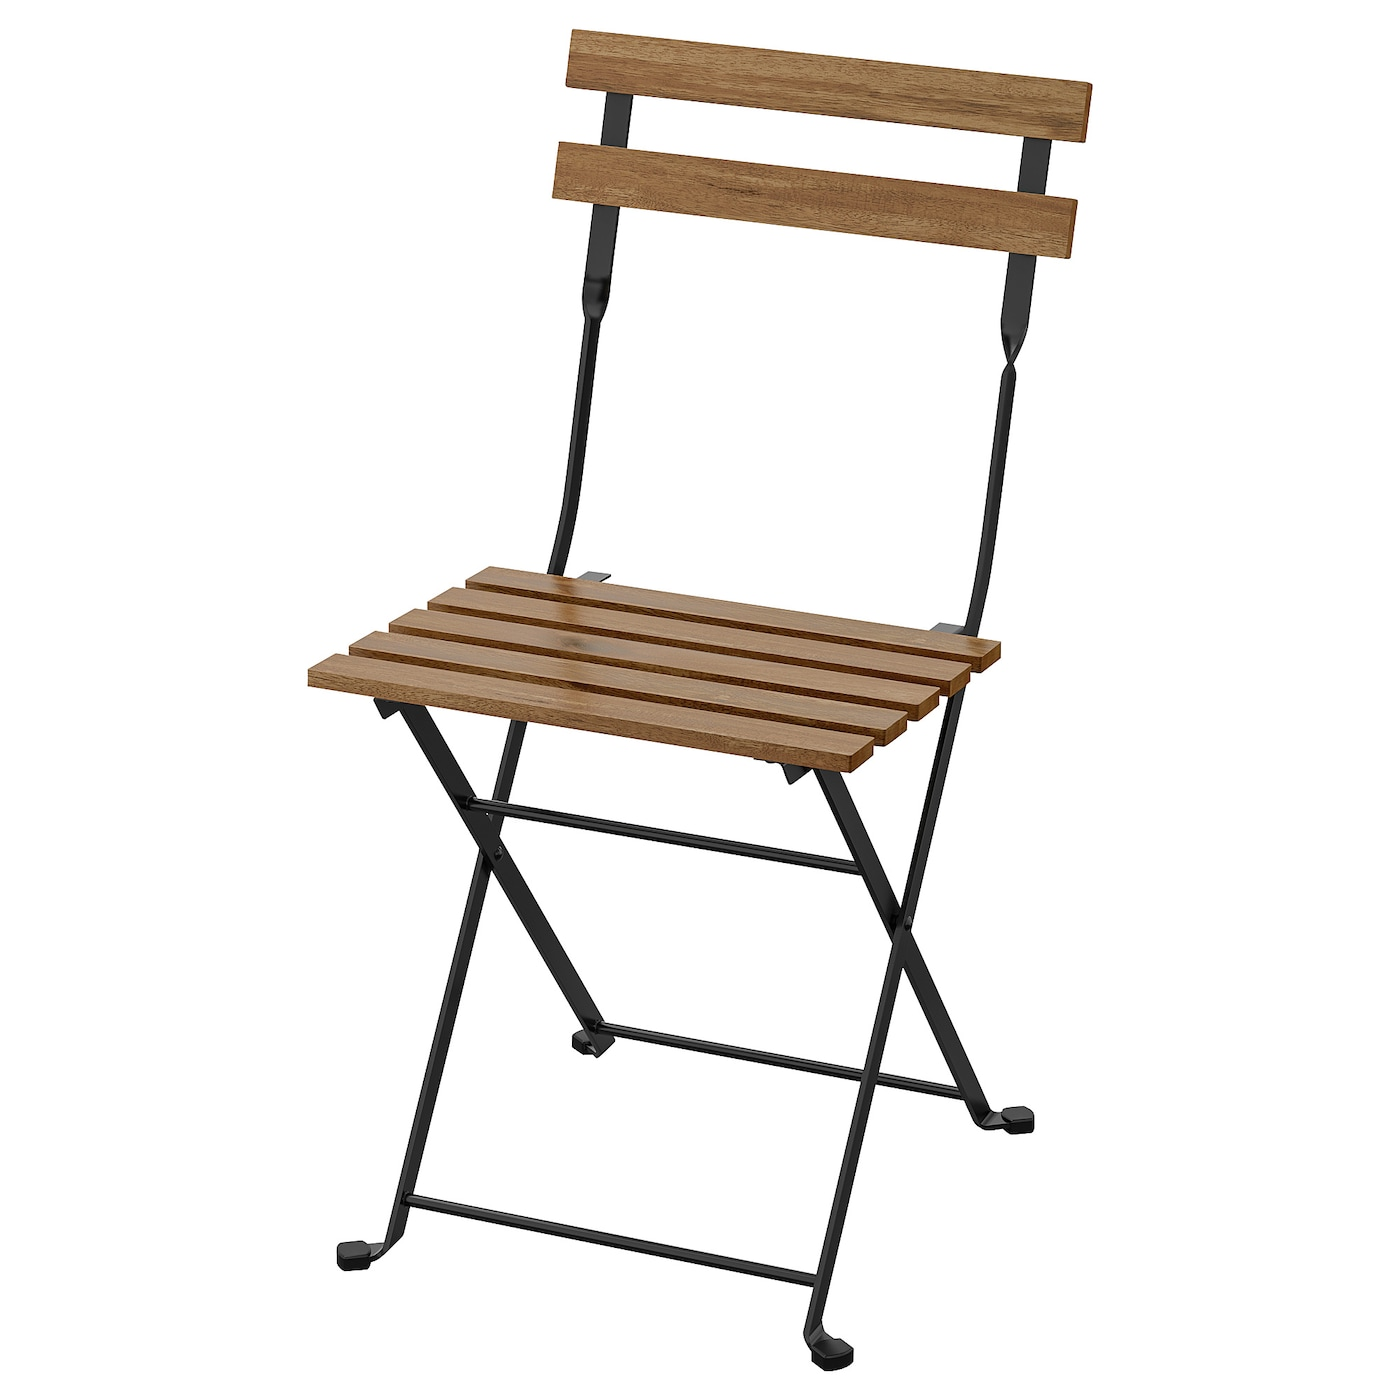 Miraculous Chair Outdoor Tarno Foldable Acacia Black Gray Brown Stained Steel Light Brown Stained Ocoug Best Dining Table And Chair Ideas Images Ocougorg